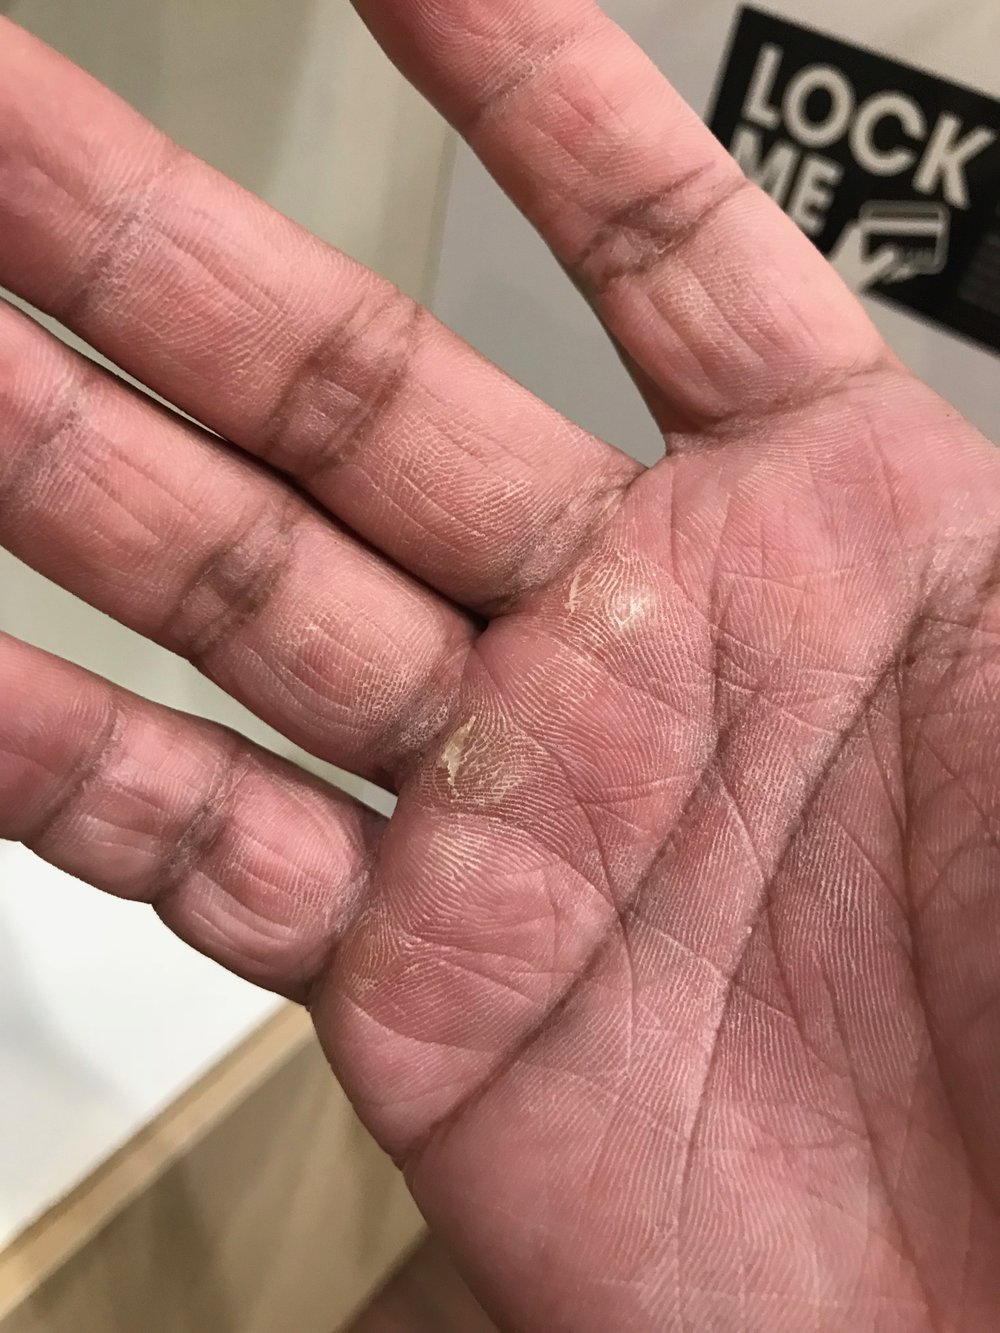 Weak ass hands after doing pullups